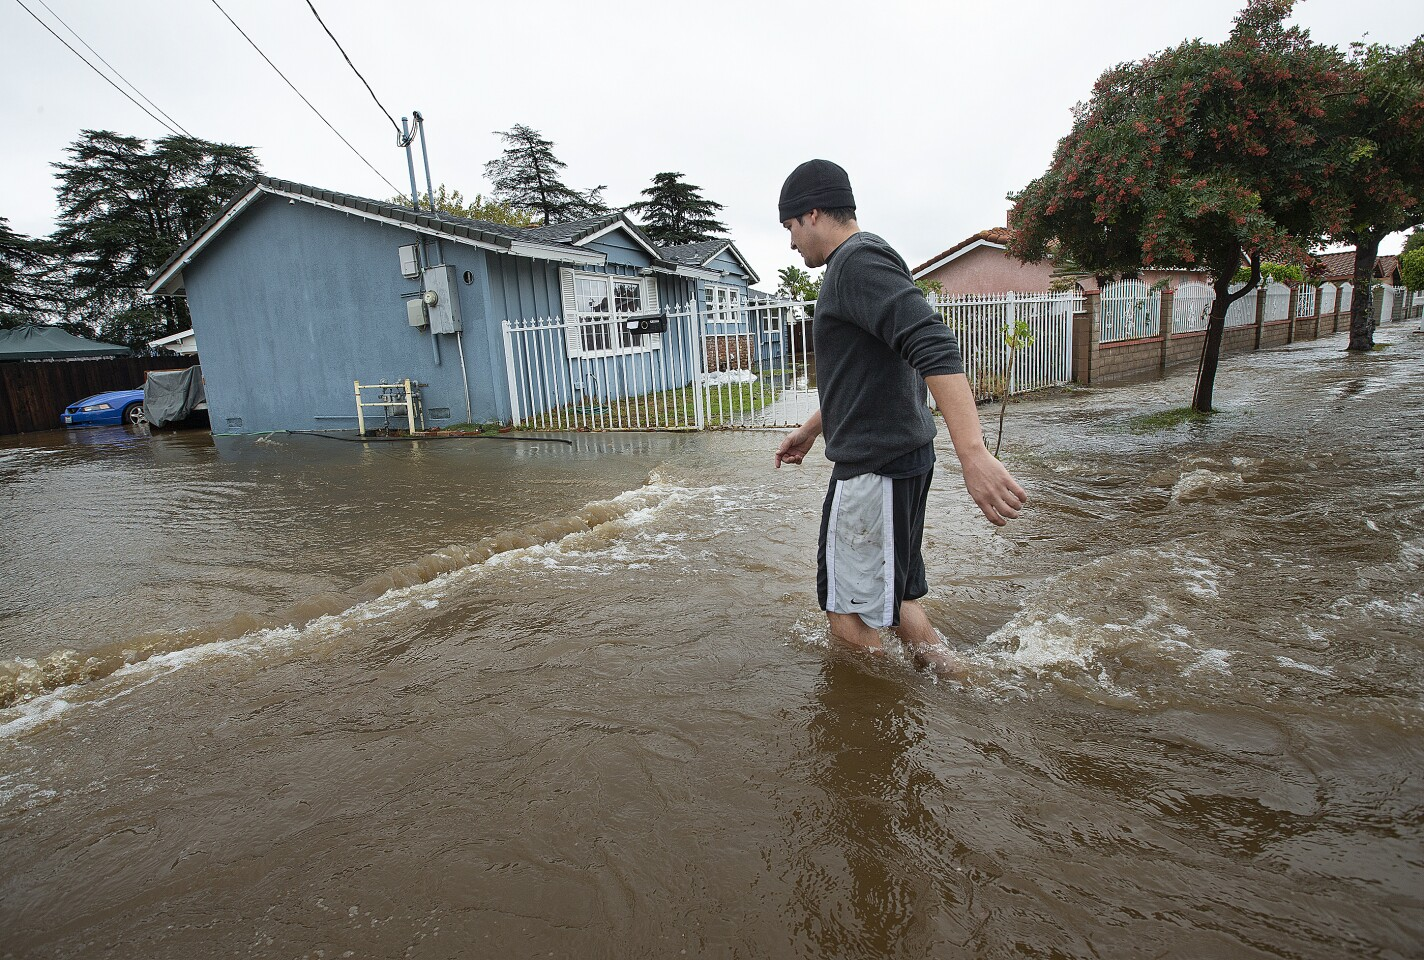 MISSION HILLS, CA-DECEMBER 4, 2019: Mission Hills resident Alberto Rodriguez, 32, walks through knee deep water on a flooded street outside of his home, at left, on Woodman Ave. The cause of the flood was a rupture from a 72 inch steel riveted trunk line that was installed back in 1914. (Mel Melcon/Los Angeles Times)